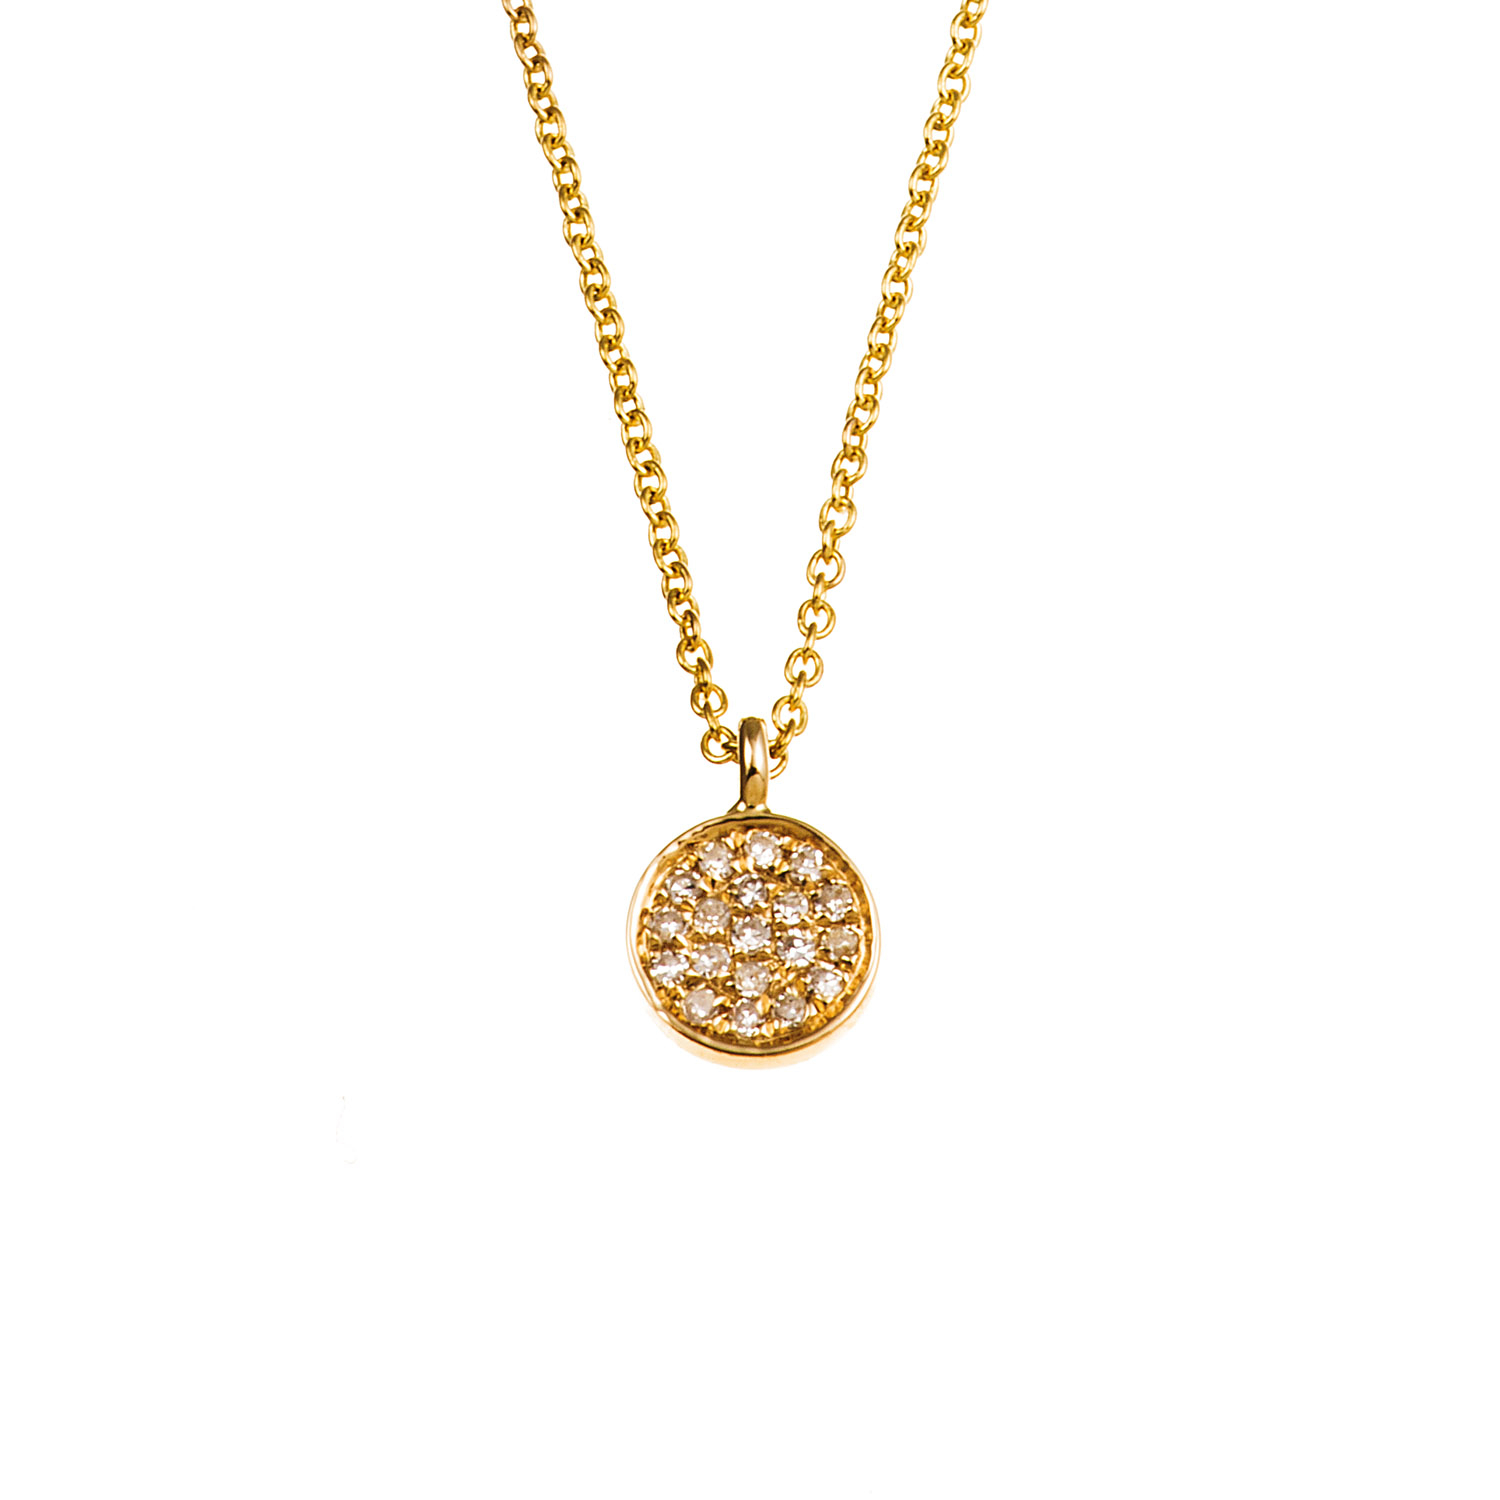 18K Gold And Diamond Mini Circle Necklace (N5705 Y) Regarding Most Popular Circle Of Sparkle Necklaces (View 2 of 25)